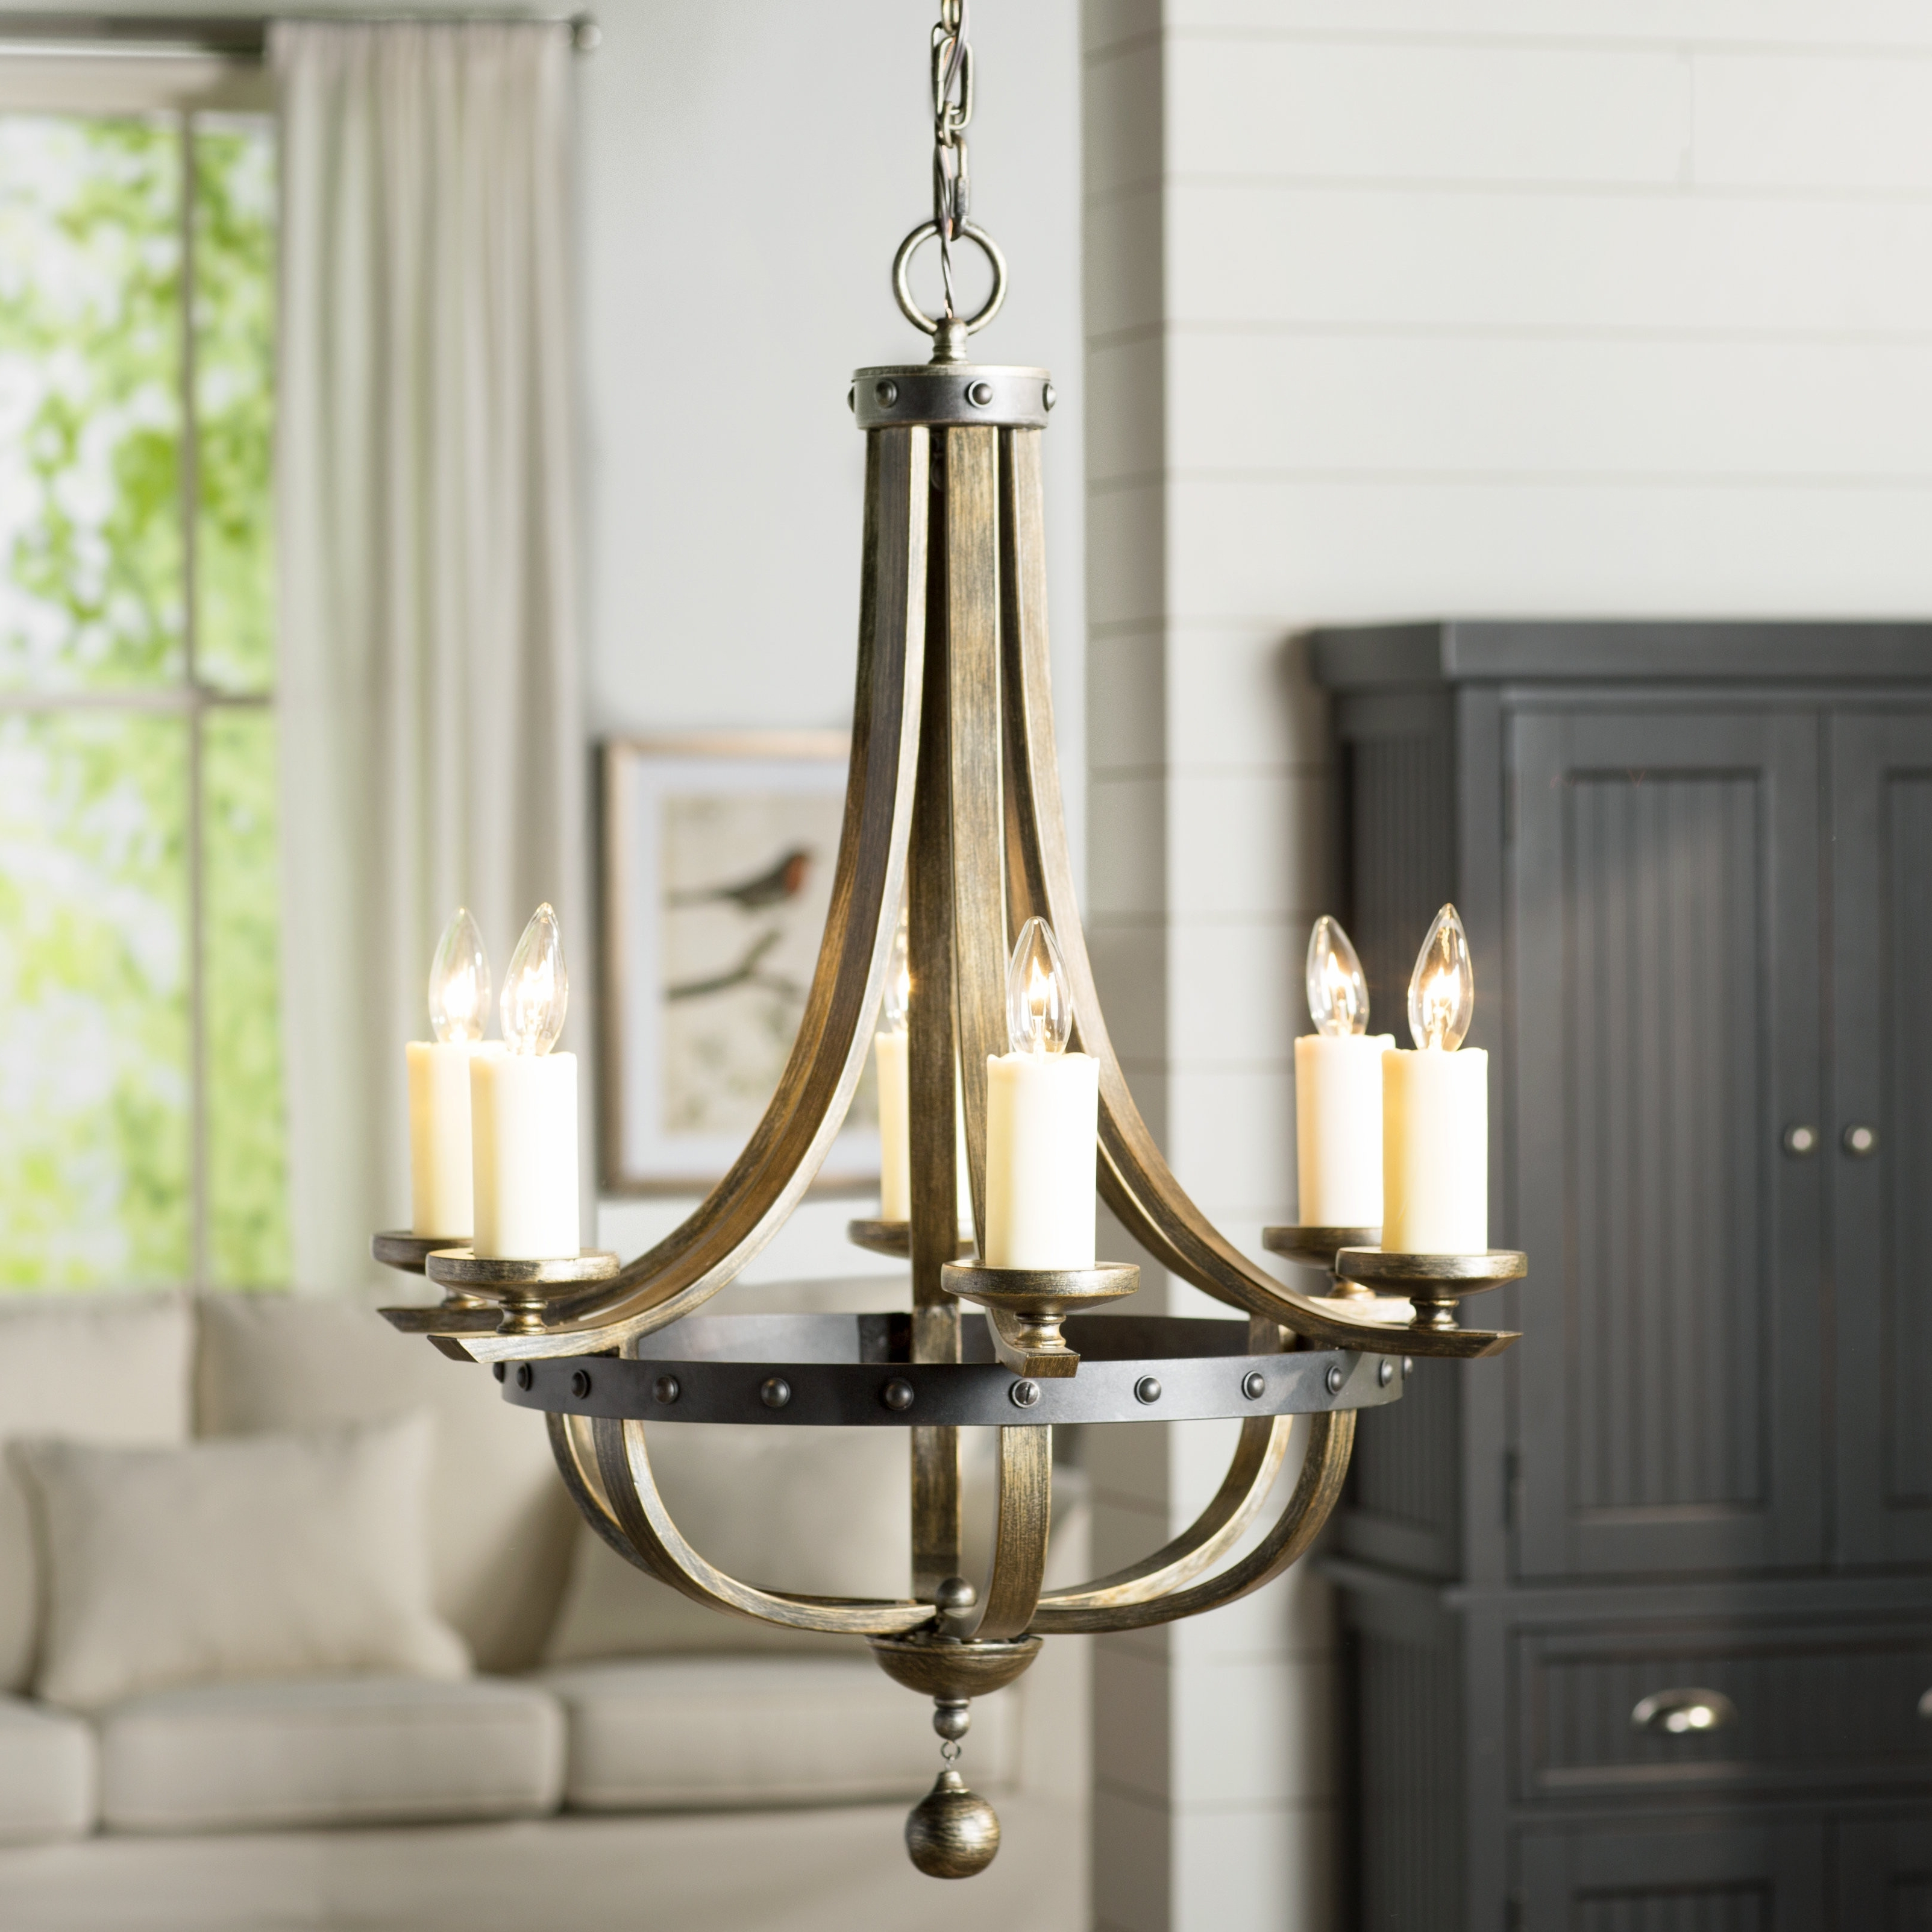 Trendy Hanging Candle Chandeliers Pertaining To Chandeliers : Hanging Candle Chandelier Luxury Wood Chandeliers You (View 16 of 20)